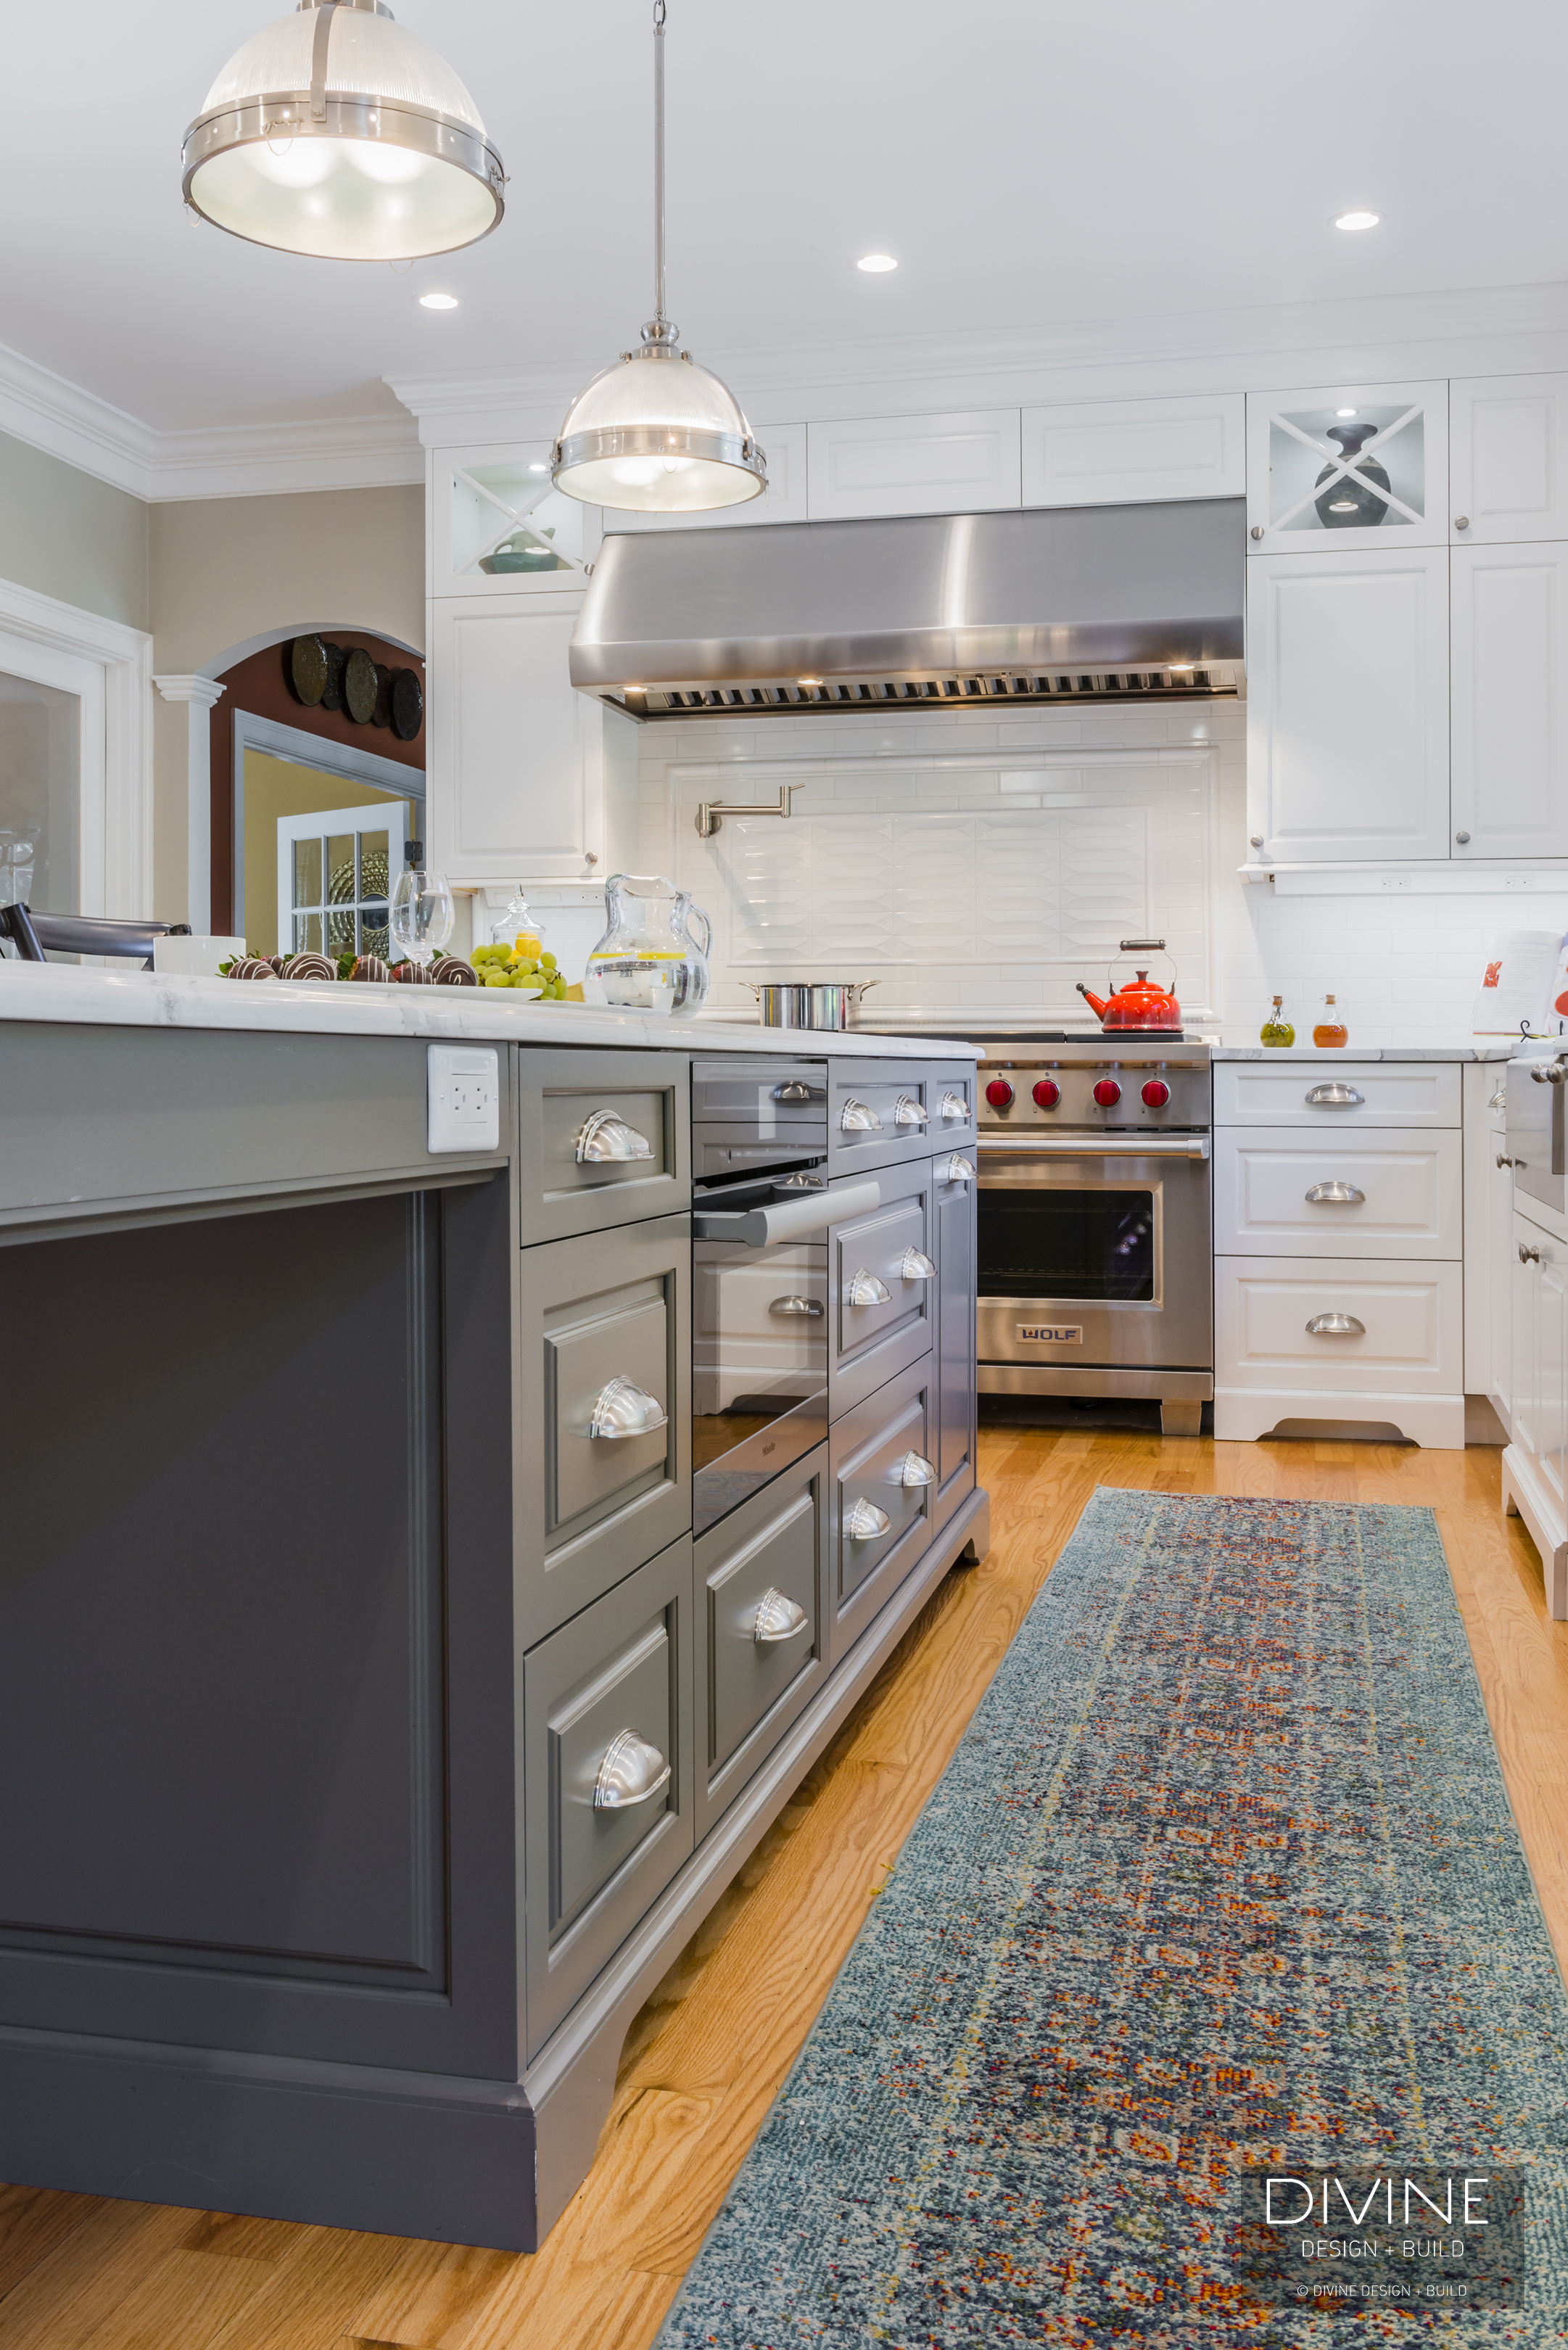 A guide to kitchen cabinet hardware